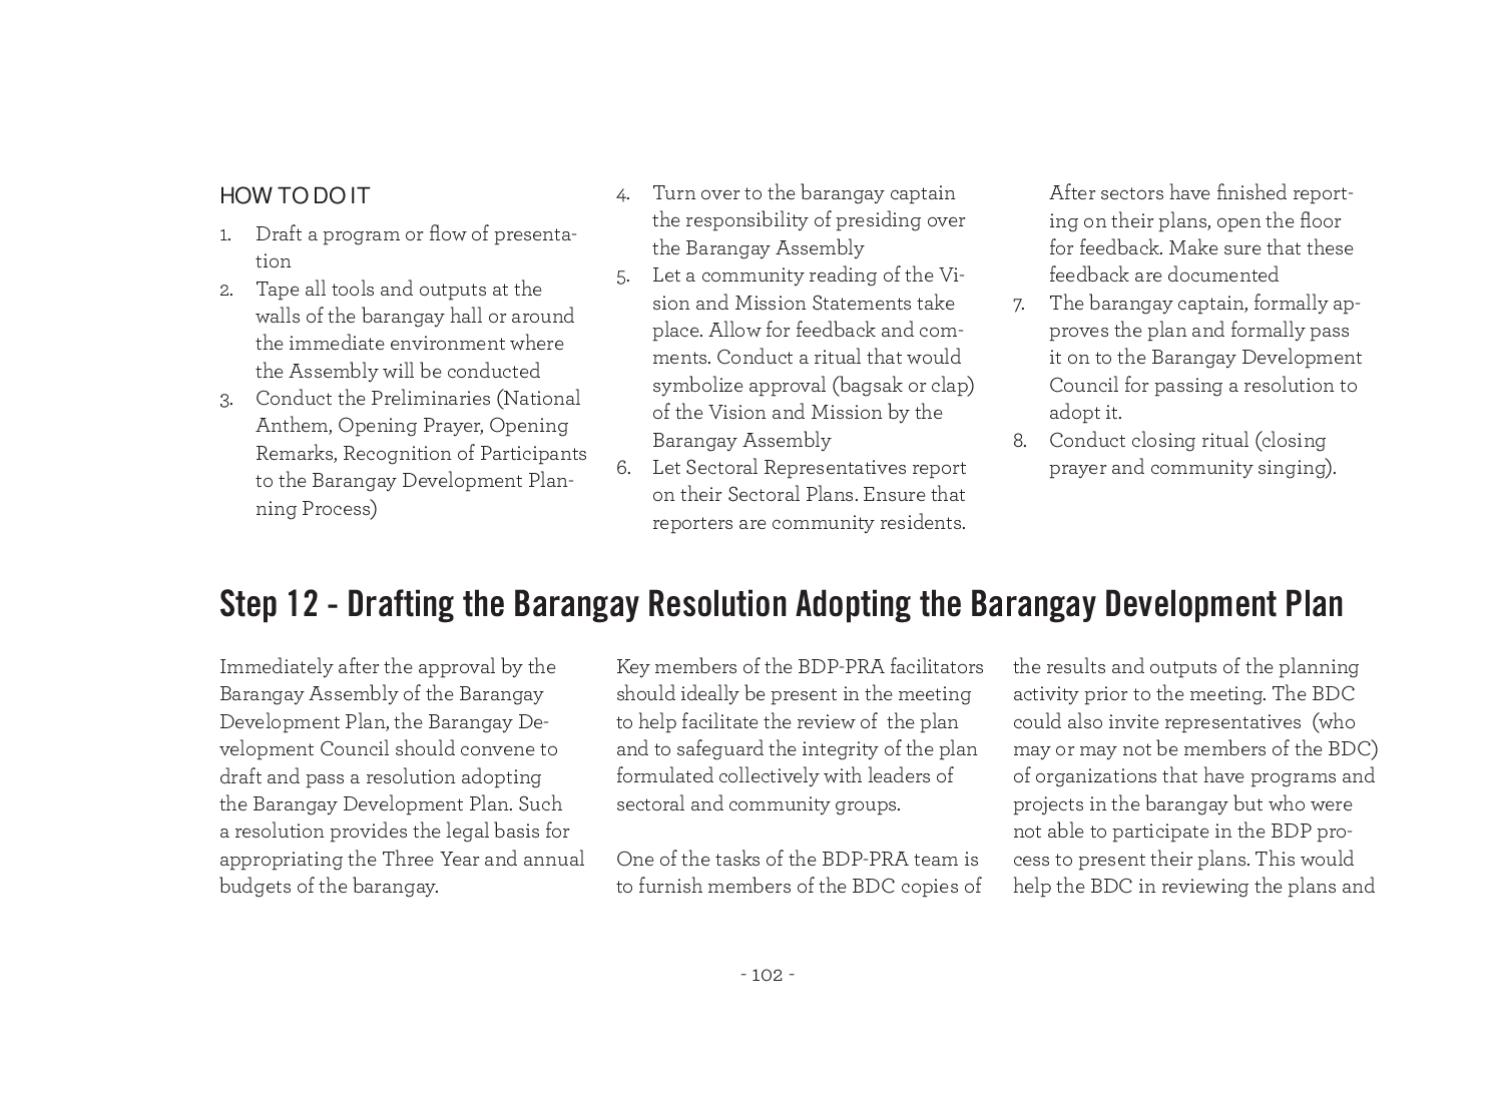 A Field Guide - Barangay Governance and Planning by Local